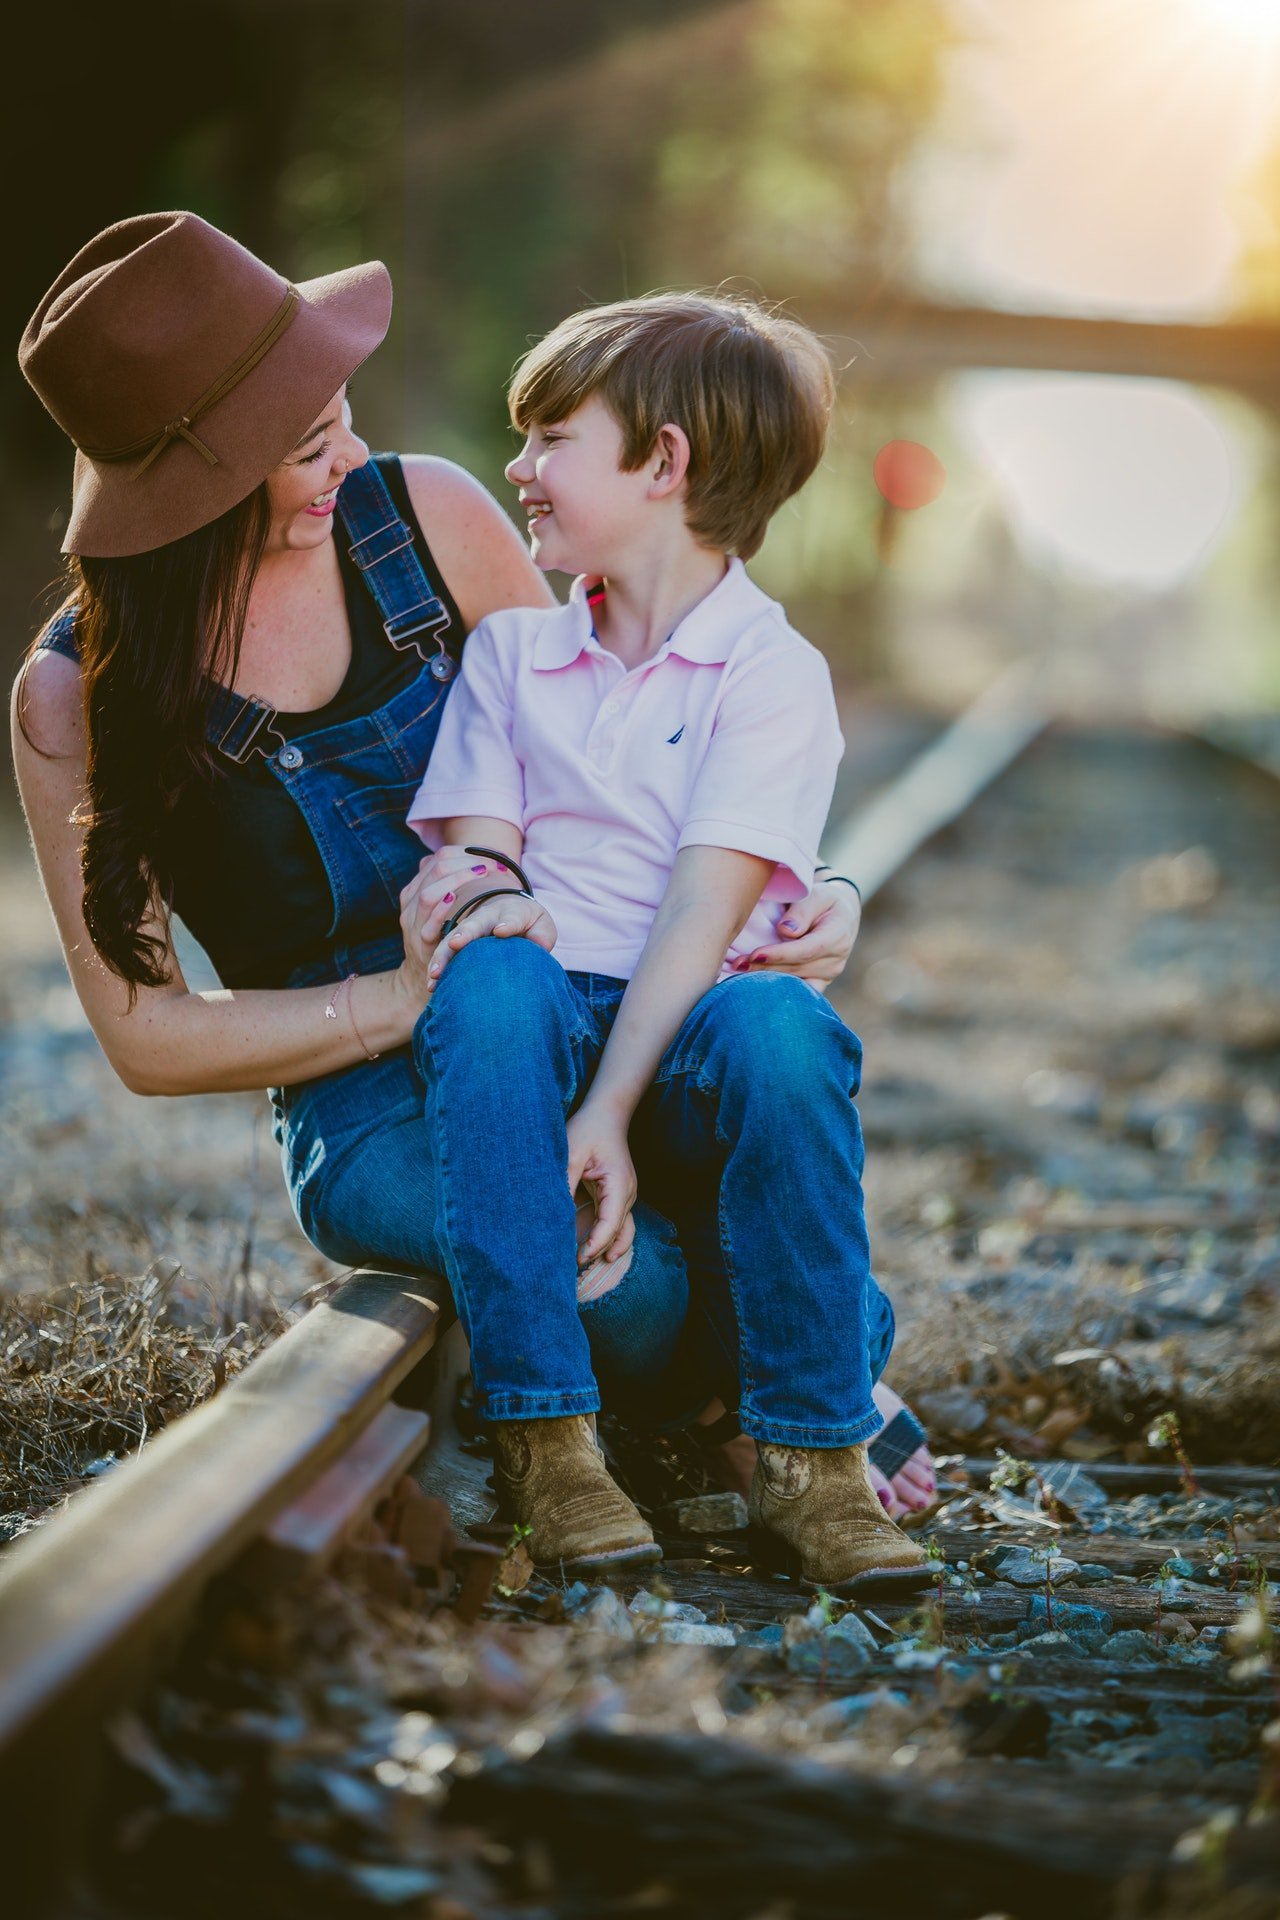 No matter how busy she was, that woman prioritized her son after her encounter with Mrs. Wilcox. | Source: Pexels